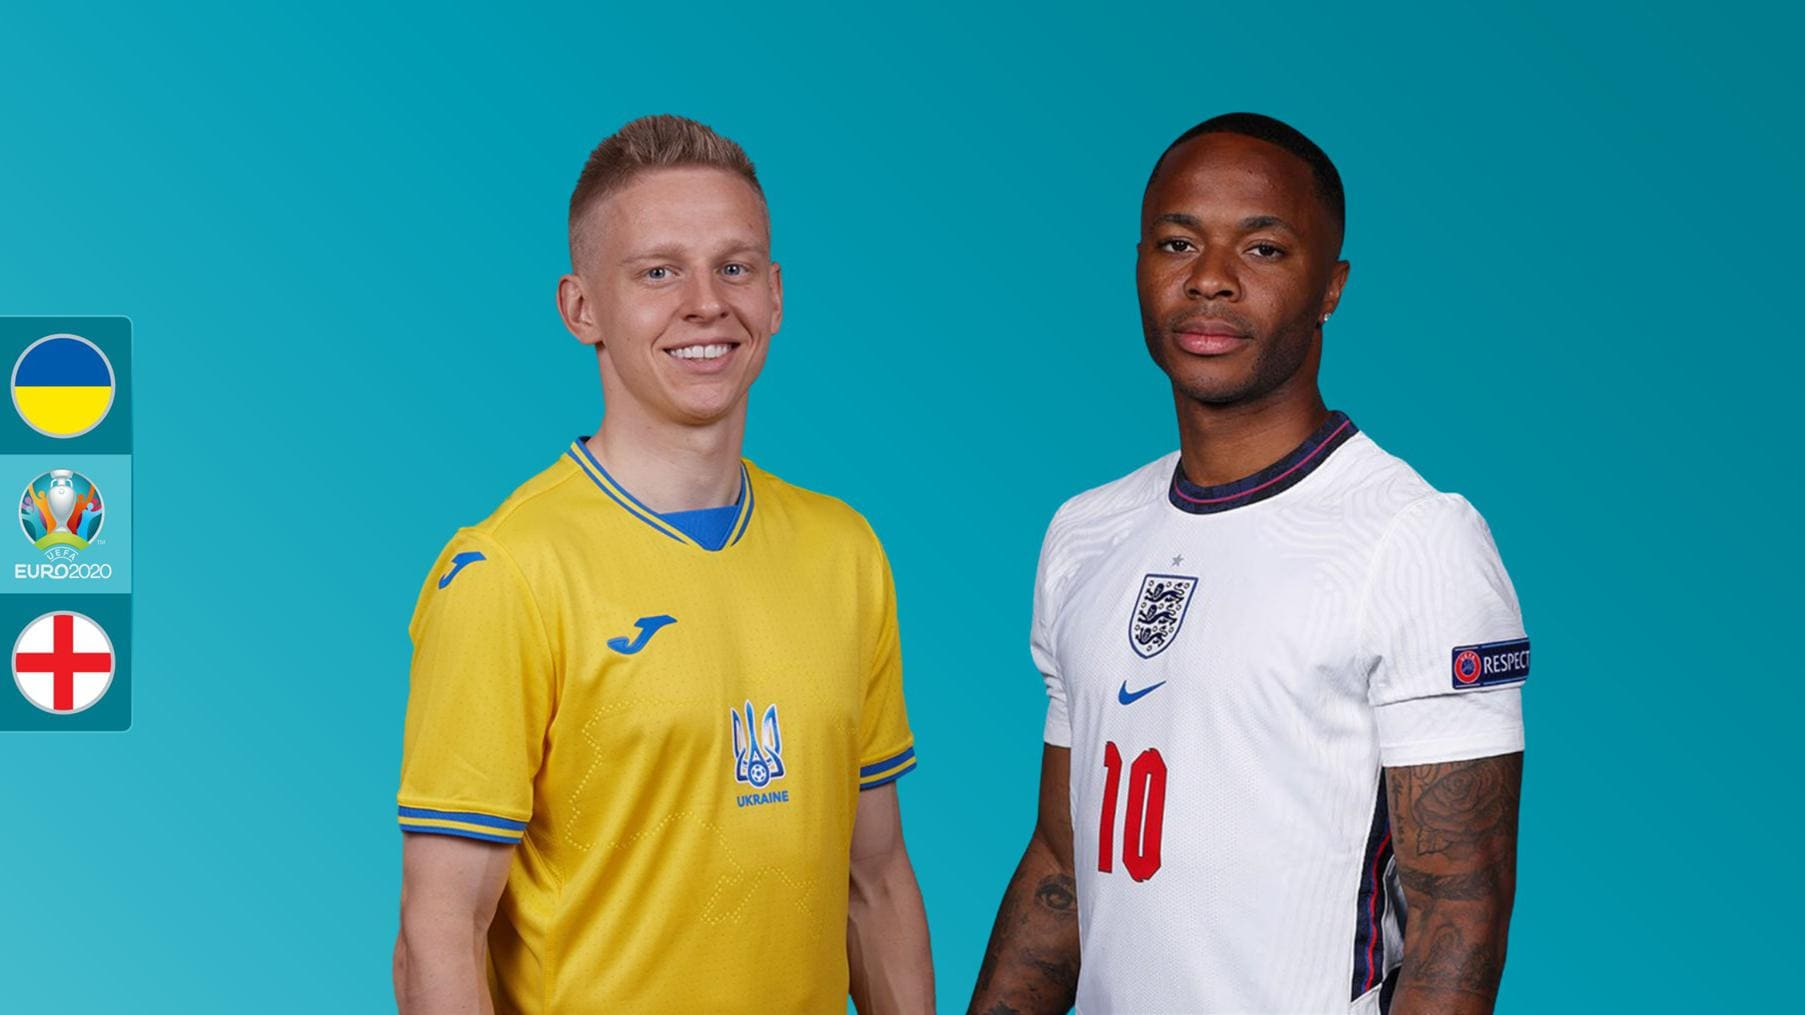 Ukraine vs England UEFA EURO 2020 preview: where to watch, TV channels and live streams, team news, form guide